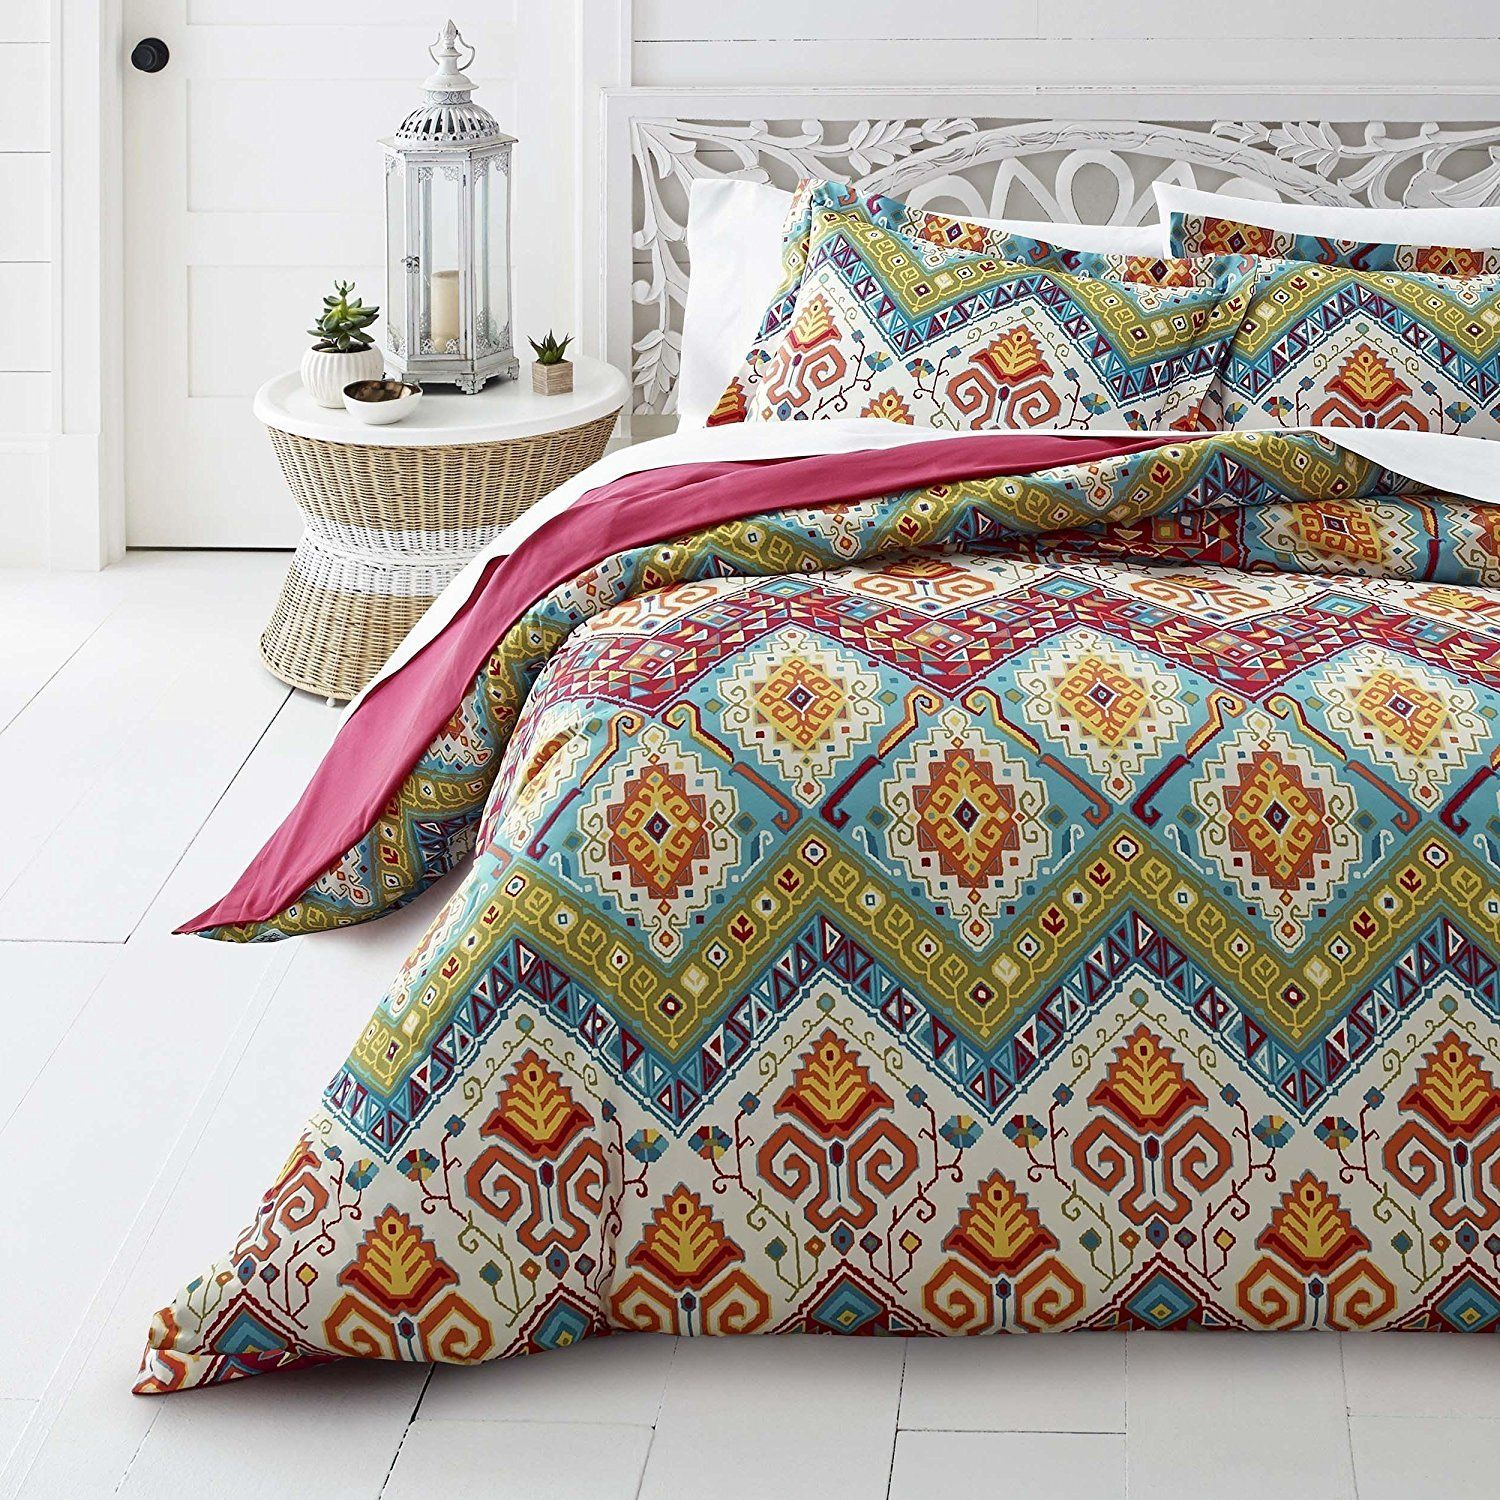 cotton nordica setss uk bohemian accessories bedspreads picture brushed themed covers boho pictures sets comely style about funda pcs gallery more agreeable moroccan bedclothes y wedding full designs detailed pinterest hd dlgqup version magnificent cover bedroom duvet bedding furniture set